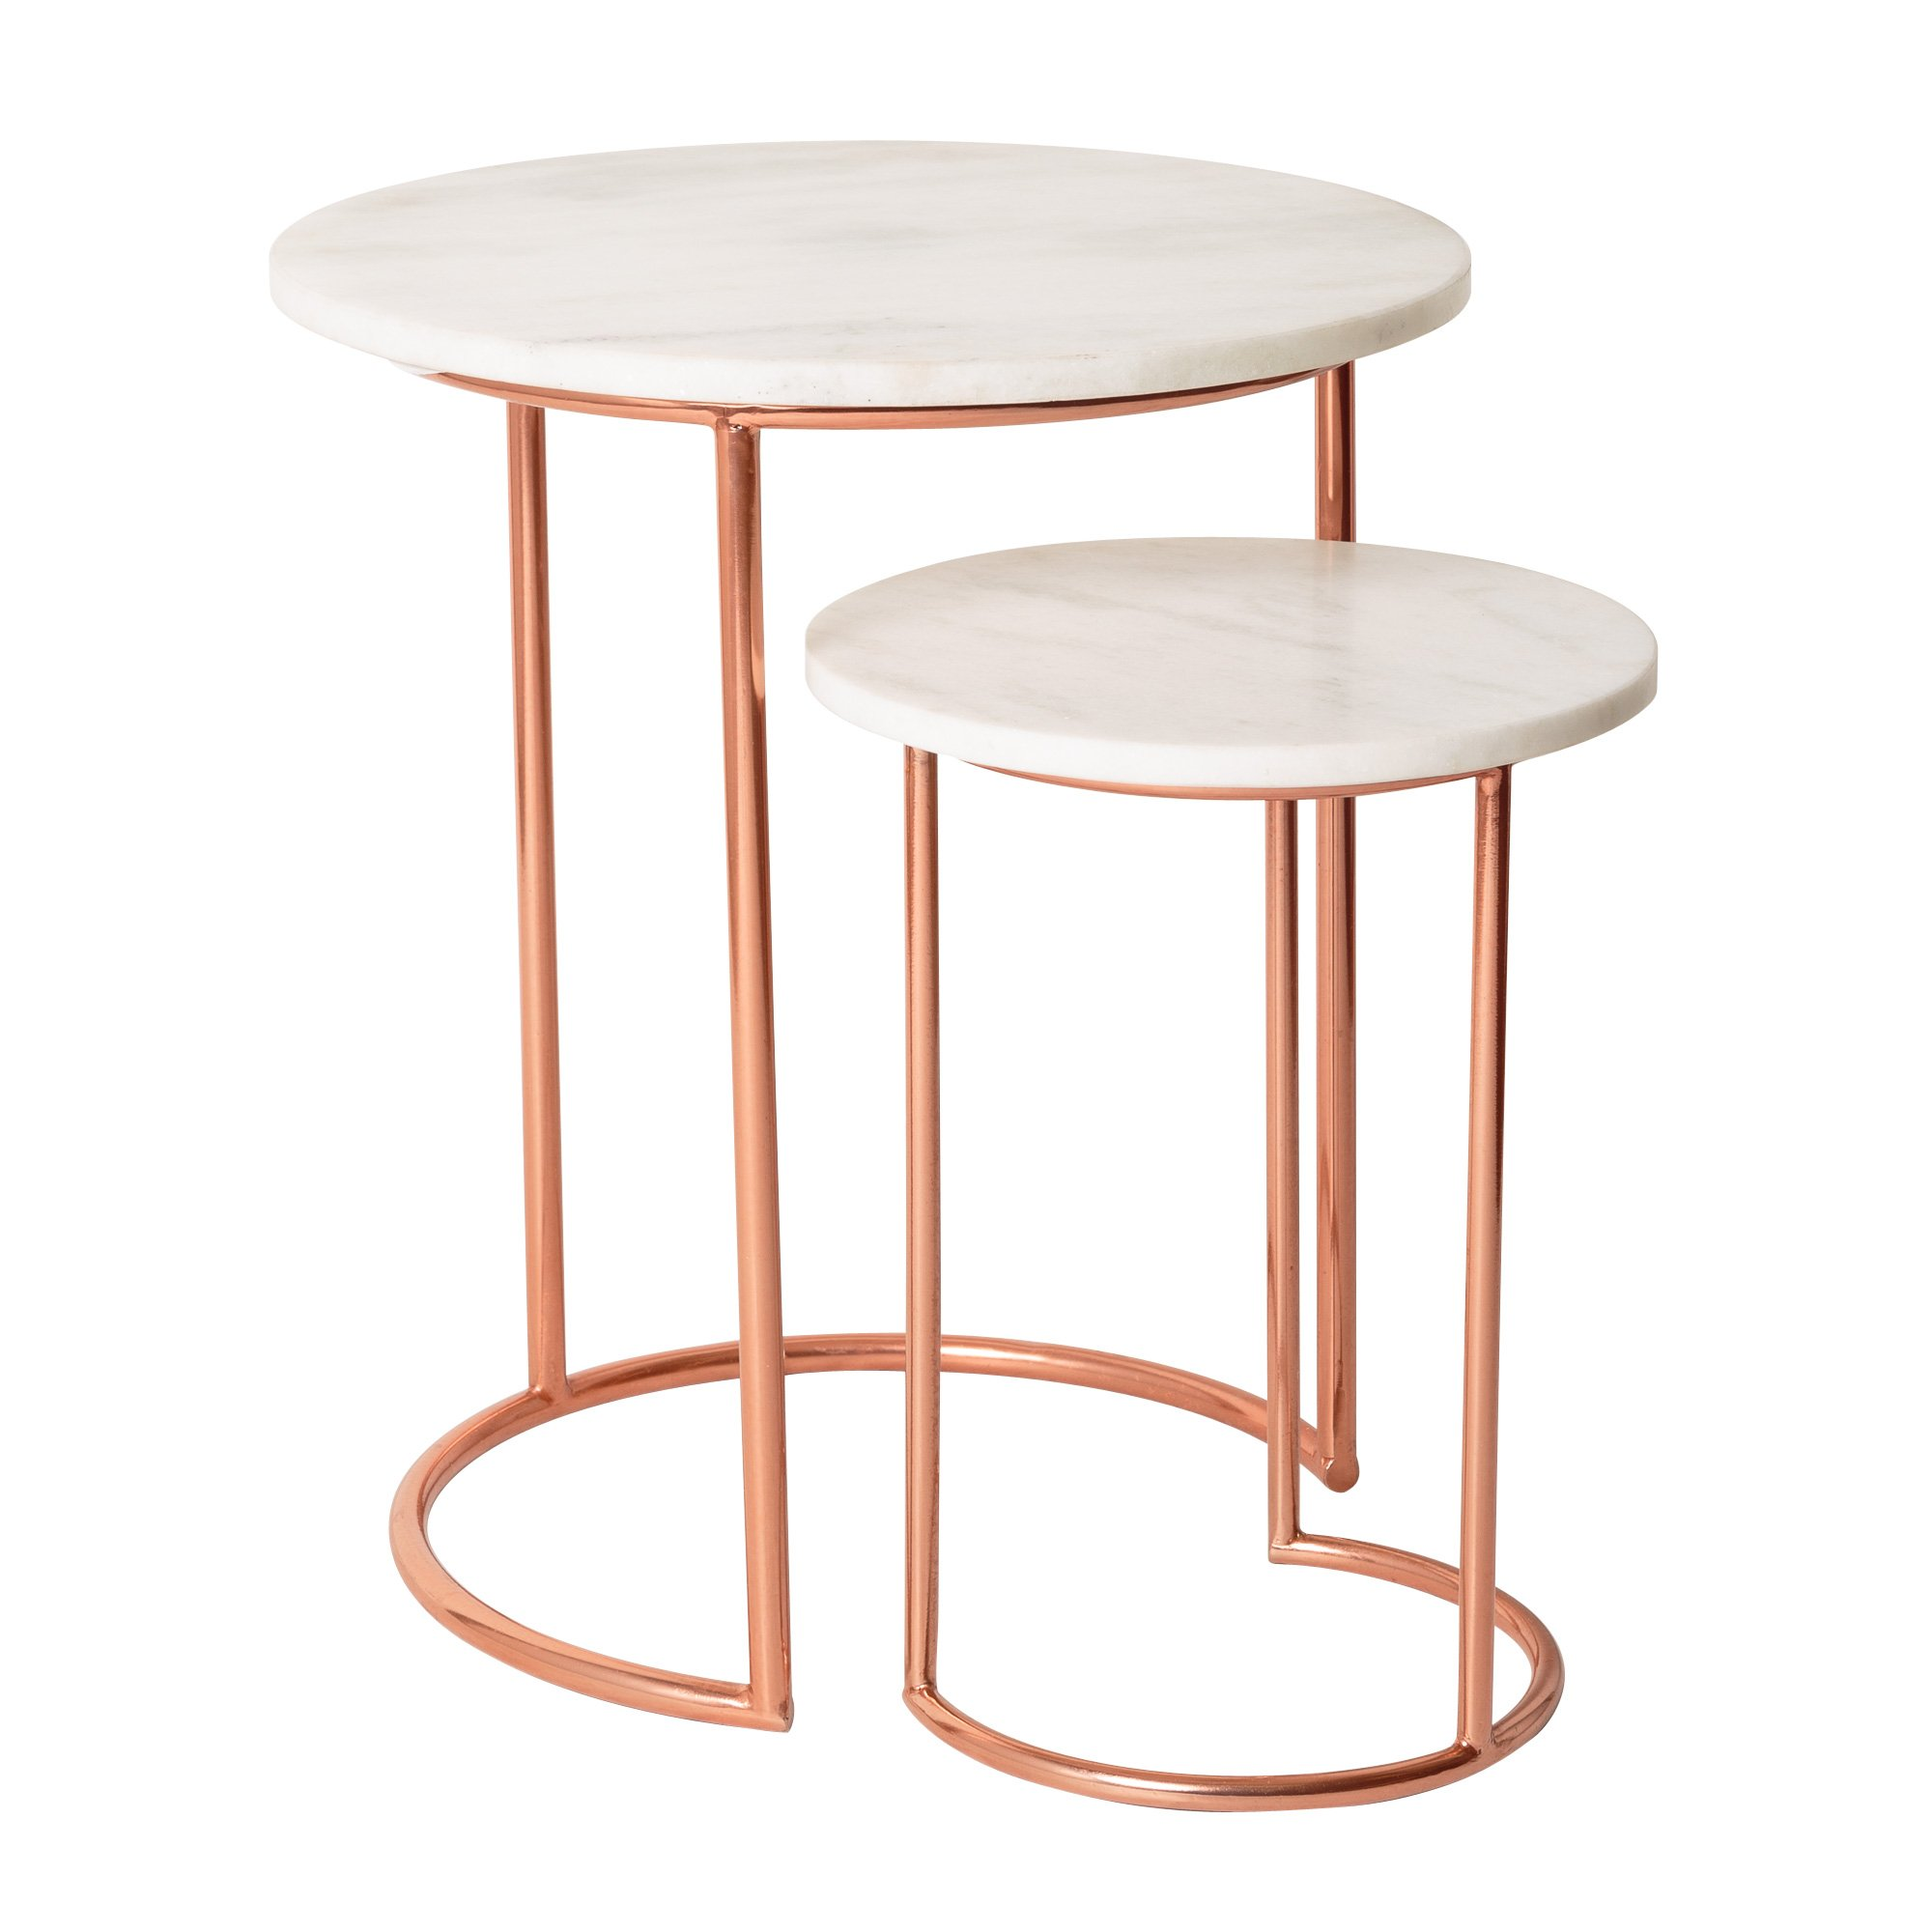 productpage sidetable whitemarble century and side table desktop swoon carousel modern mid editions brass marble bilbao white